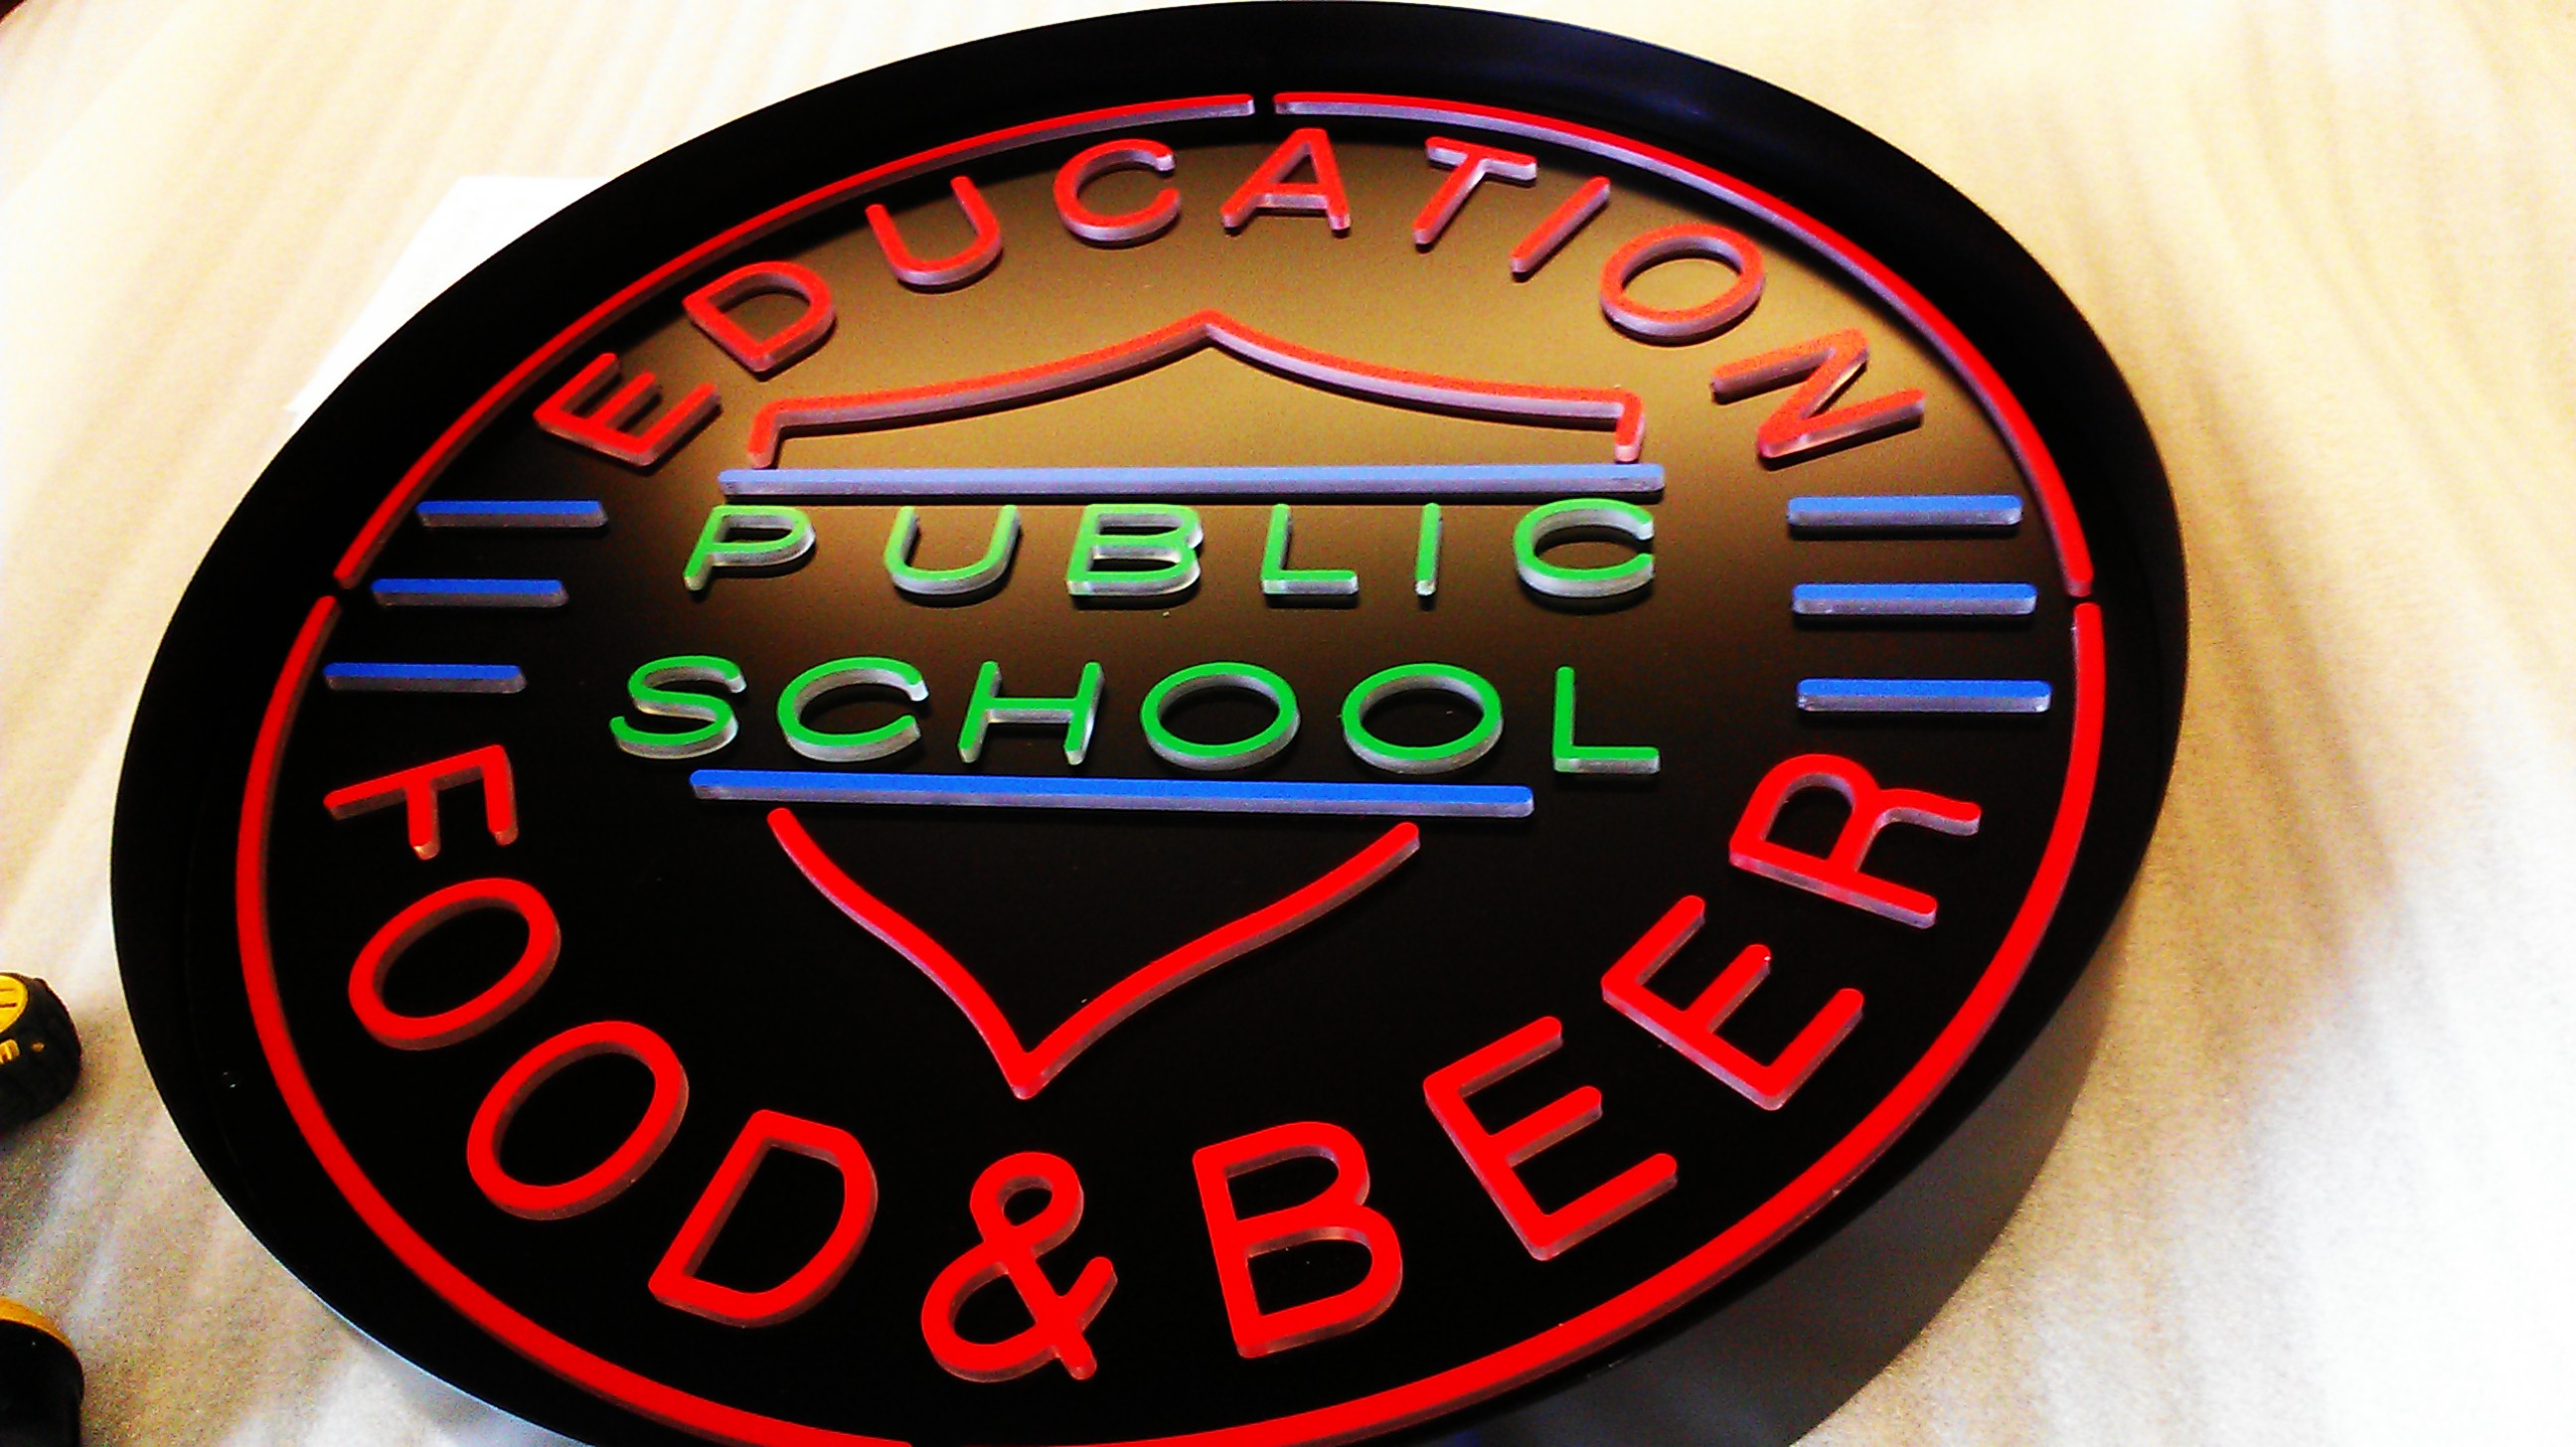 School & Beer Sign